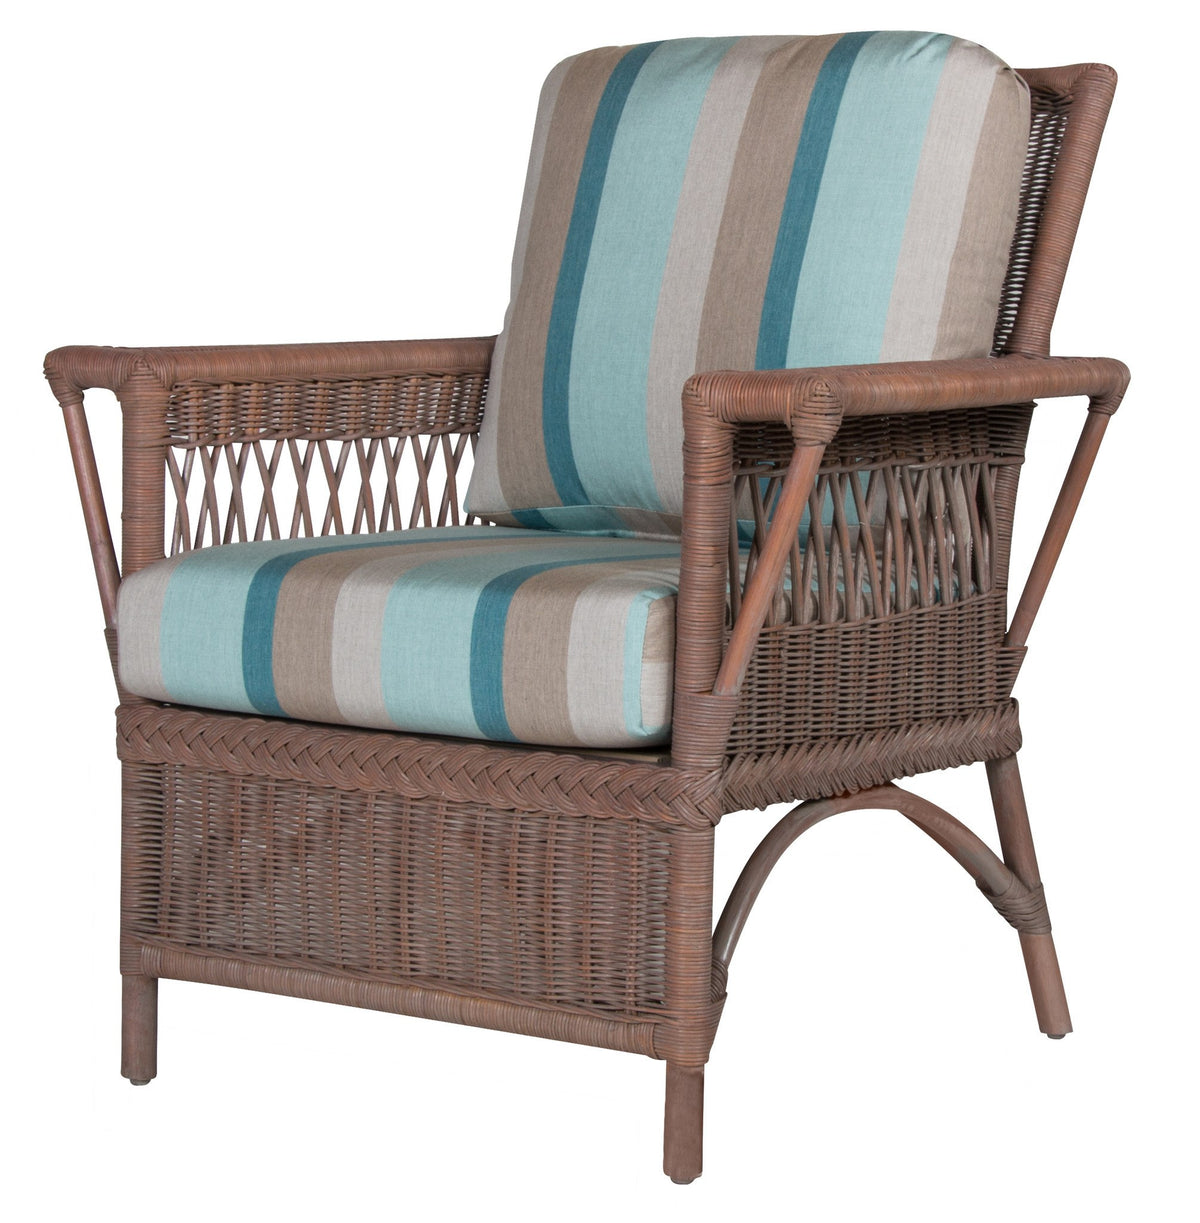 Designer Wicker & Rattan By Tribor Windsor Arm Chair by Design Wicker from Tribor Chair - Rattan Imports